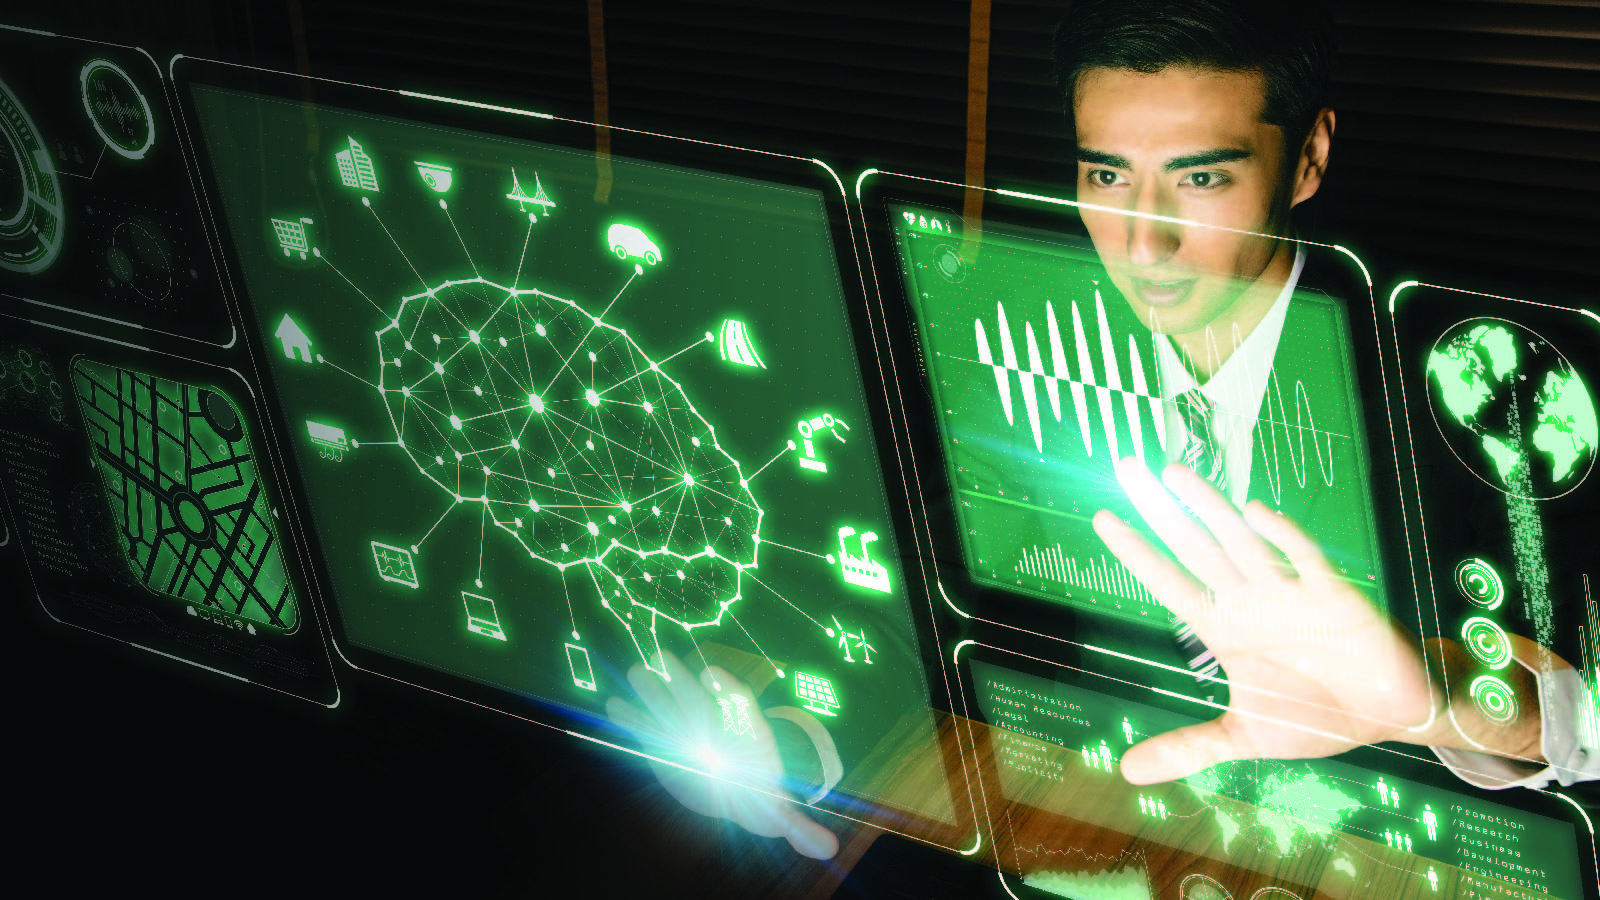 artificial intelligence, AI, deep learning, Wiley Online Library, oncology, Cancer Communications, cancer symptoms, DL, Emerging role of deep learning‐based artificial intelligence in tumor pathology, ML, machine learning, cancer care, cancer, Oncological tool, Oncologist, information technology, pathologist, pathology, medical industry, algorithms, tumor diagnosis, tumor, analysis, data analytics, machine intelligence, lesions, malignant, benign tumors, cytology diagnosis, biopsy, resection specimens, cervical cytological diagnosis, Dl-based AI, cells, IT, 5G adoption, 5G, IT infrastructure, scientific tools, hard data, doctors, radiologist, radiology, cancer screening, medical clinics, technology, medical technologist, science, healthcare, stage cancers, clinicians, intelligent technology CEO, CIO, CTO, AI, IT, artificial intelligence, ML, Deep learning, machine learning, medical science, medical sector